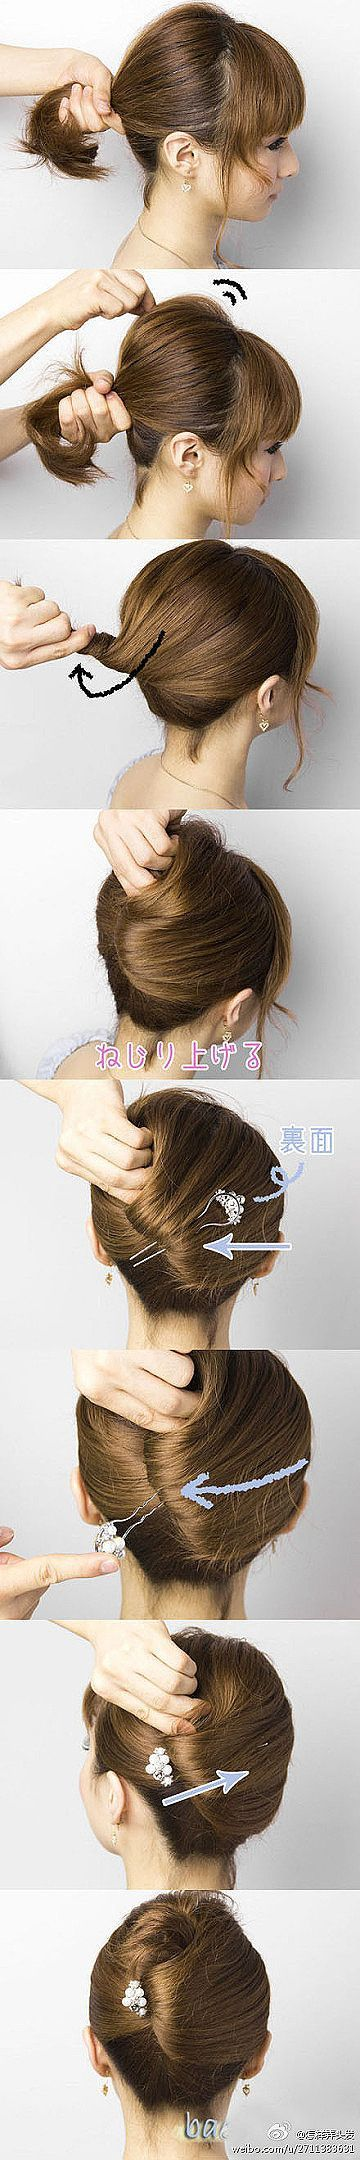 Good style for really thick medium hair... Must remember when styling mum's hair next time!